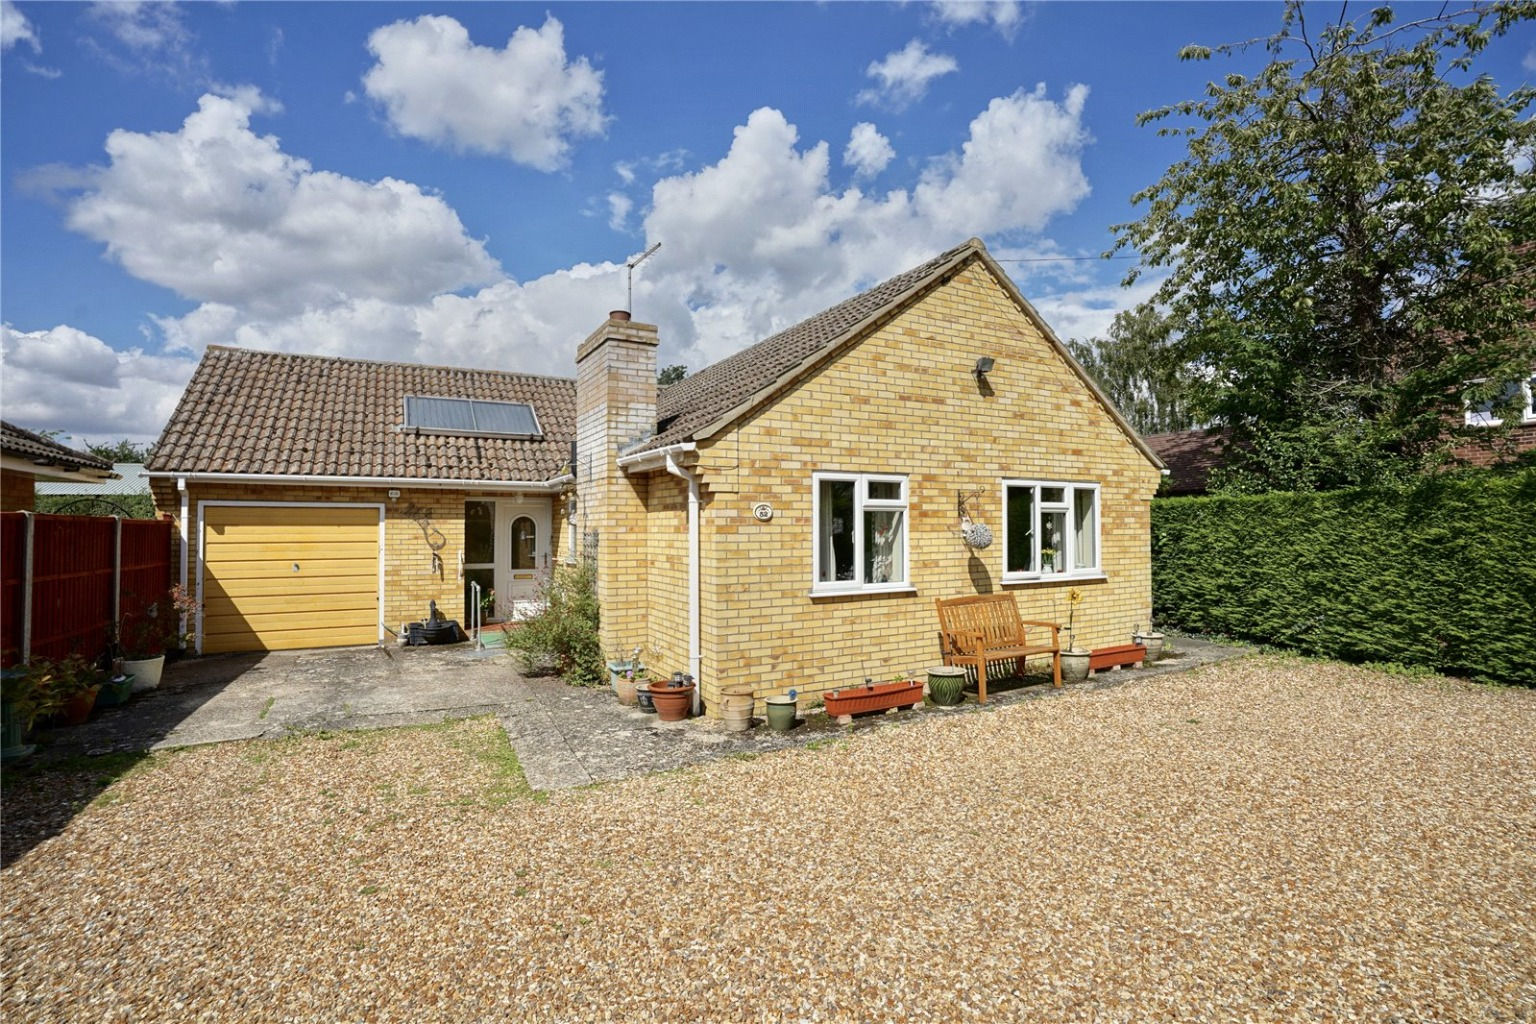 2 bed detached bungalow for sale in High Street, St. Neots - Property Image 1